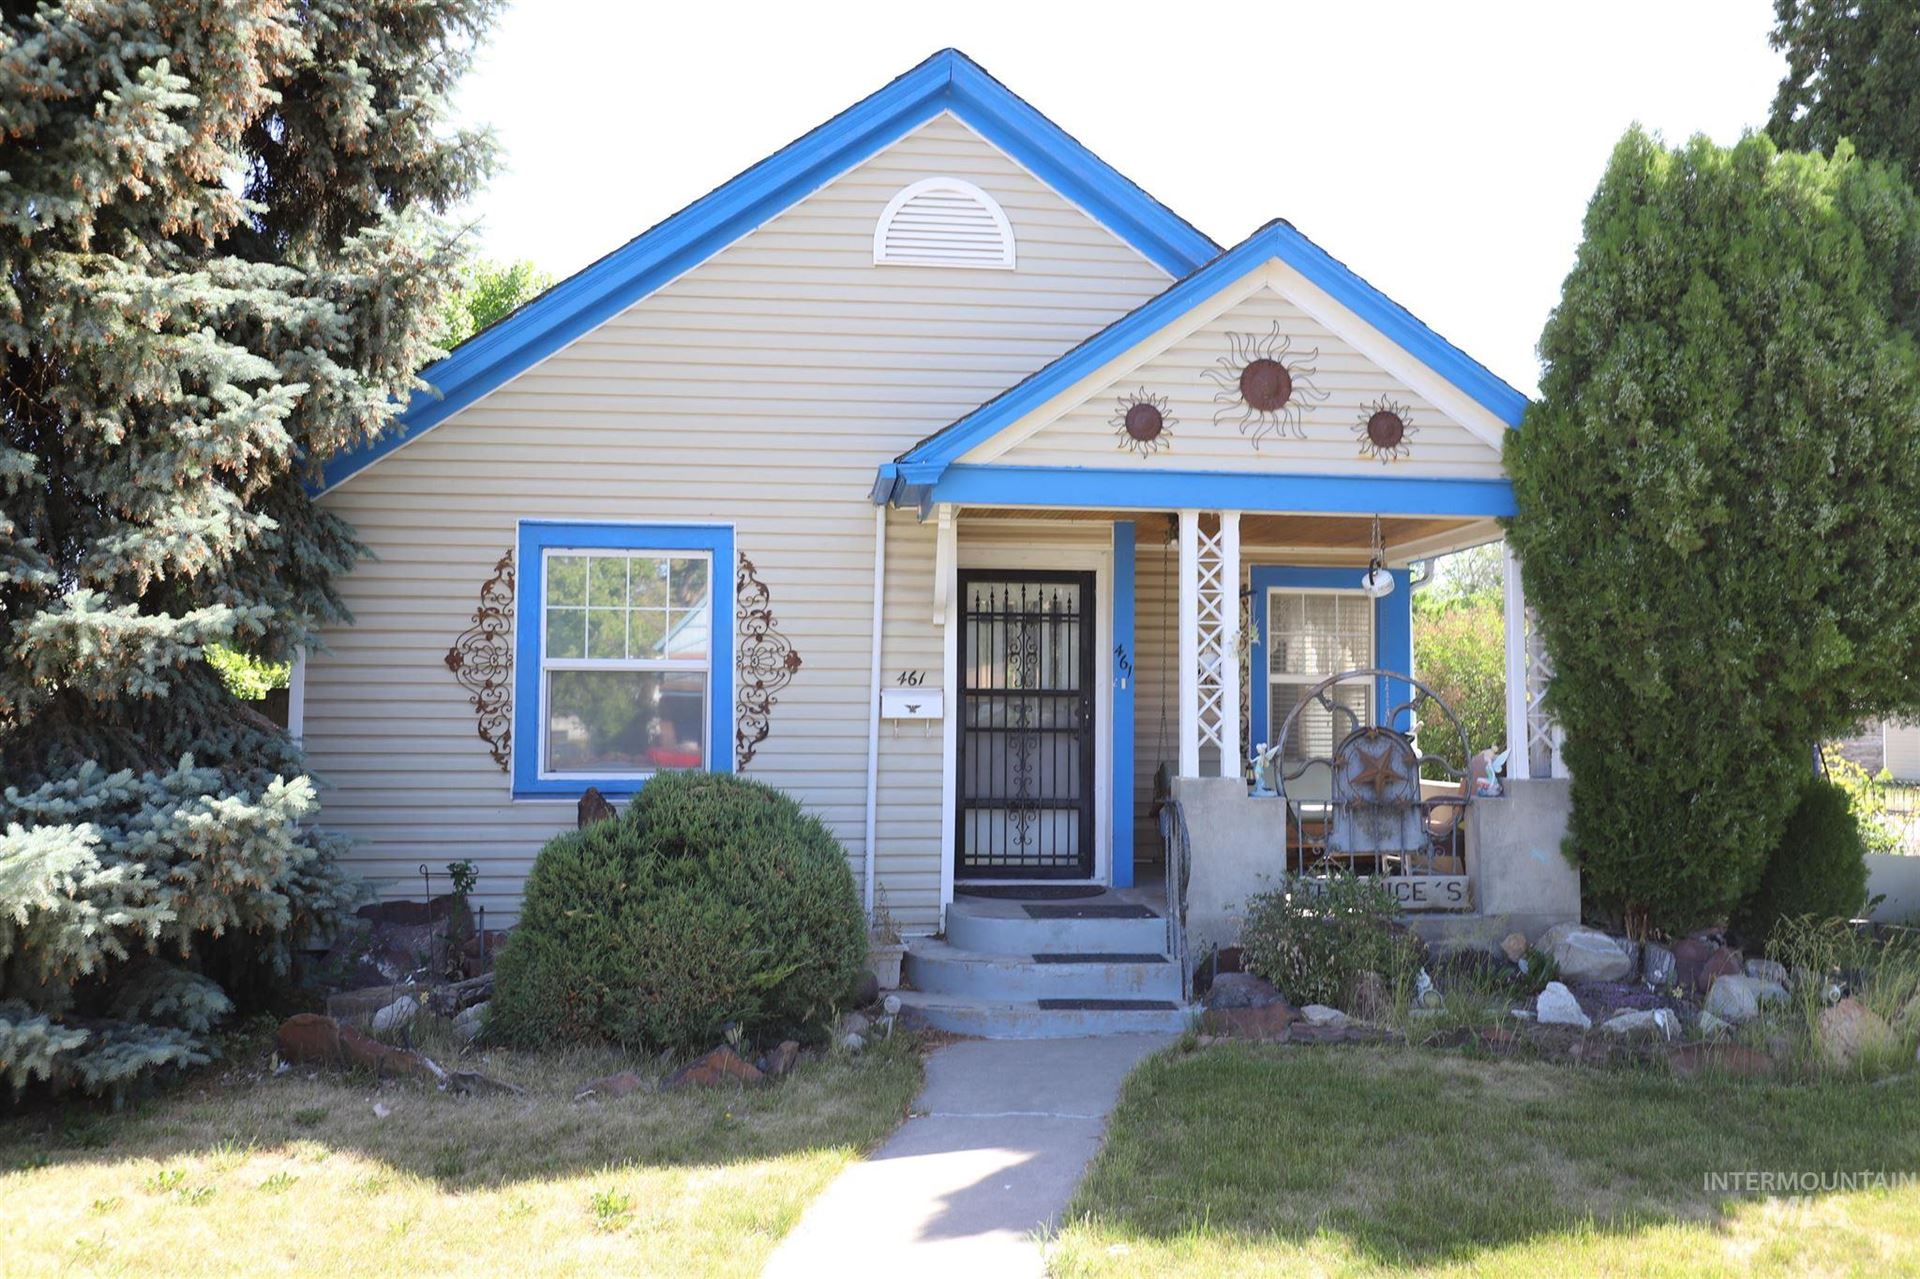 Photo of 461 5th Ave E, Twin Falls, ID 83301 (MLS # 98792202)